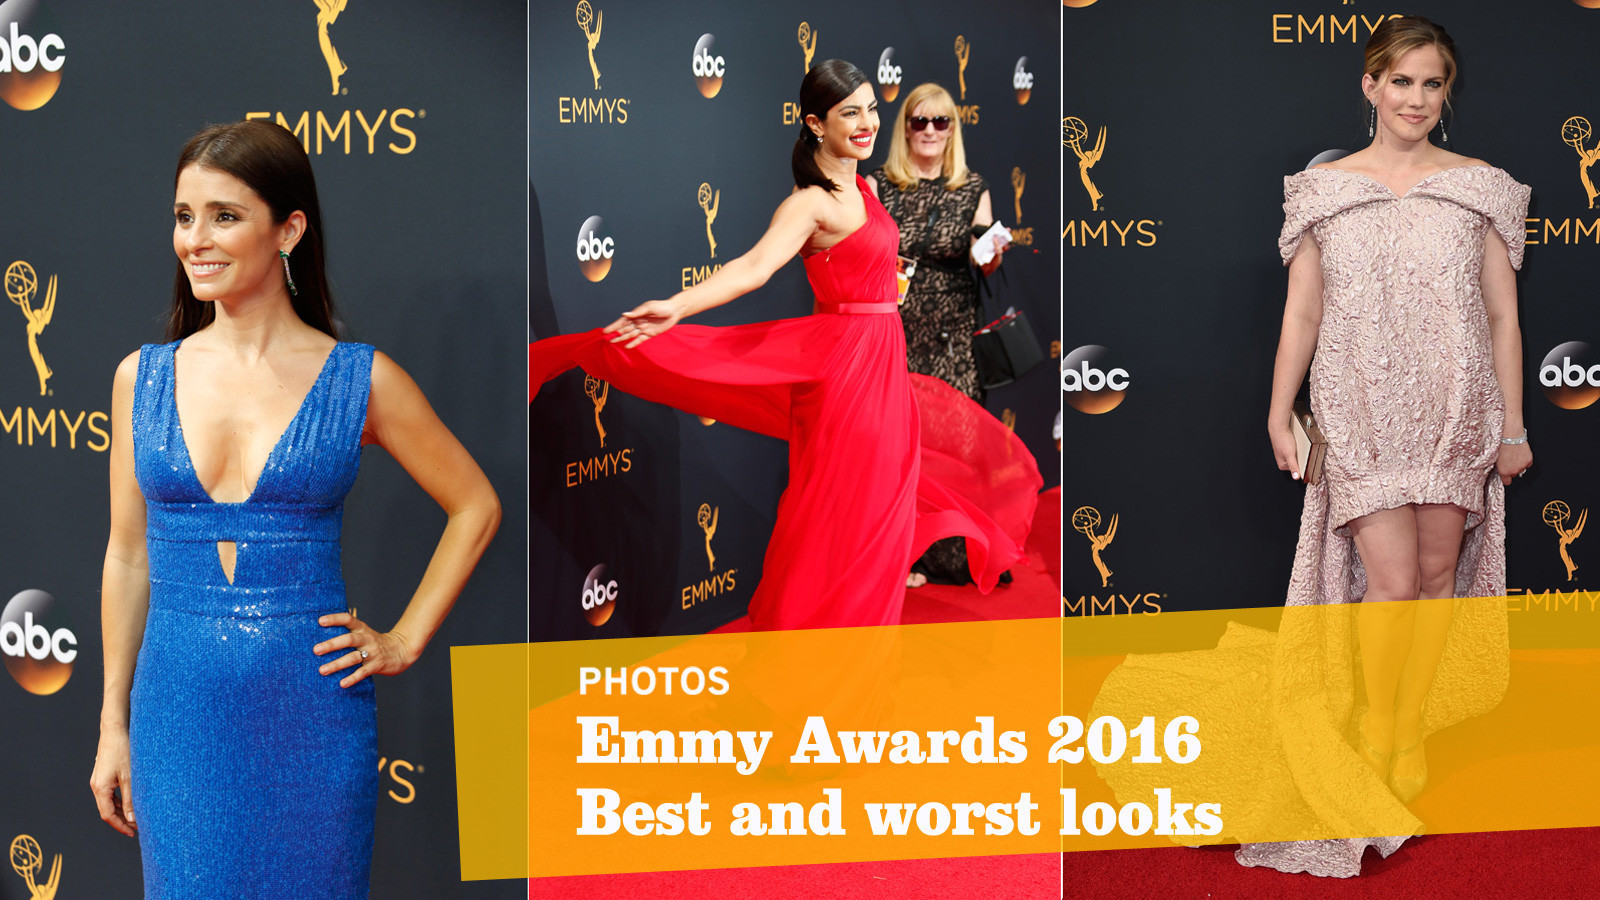 Emmy Awards 2016 | Best and worst dressed - The Morning Call Emmy Nomination